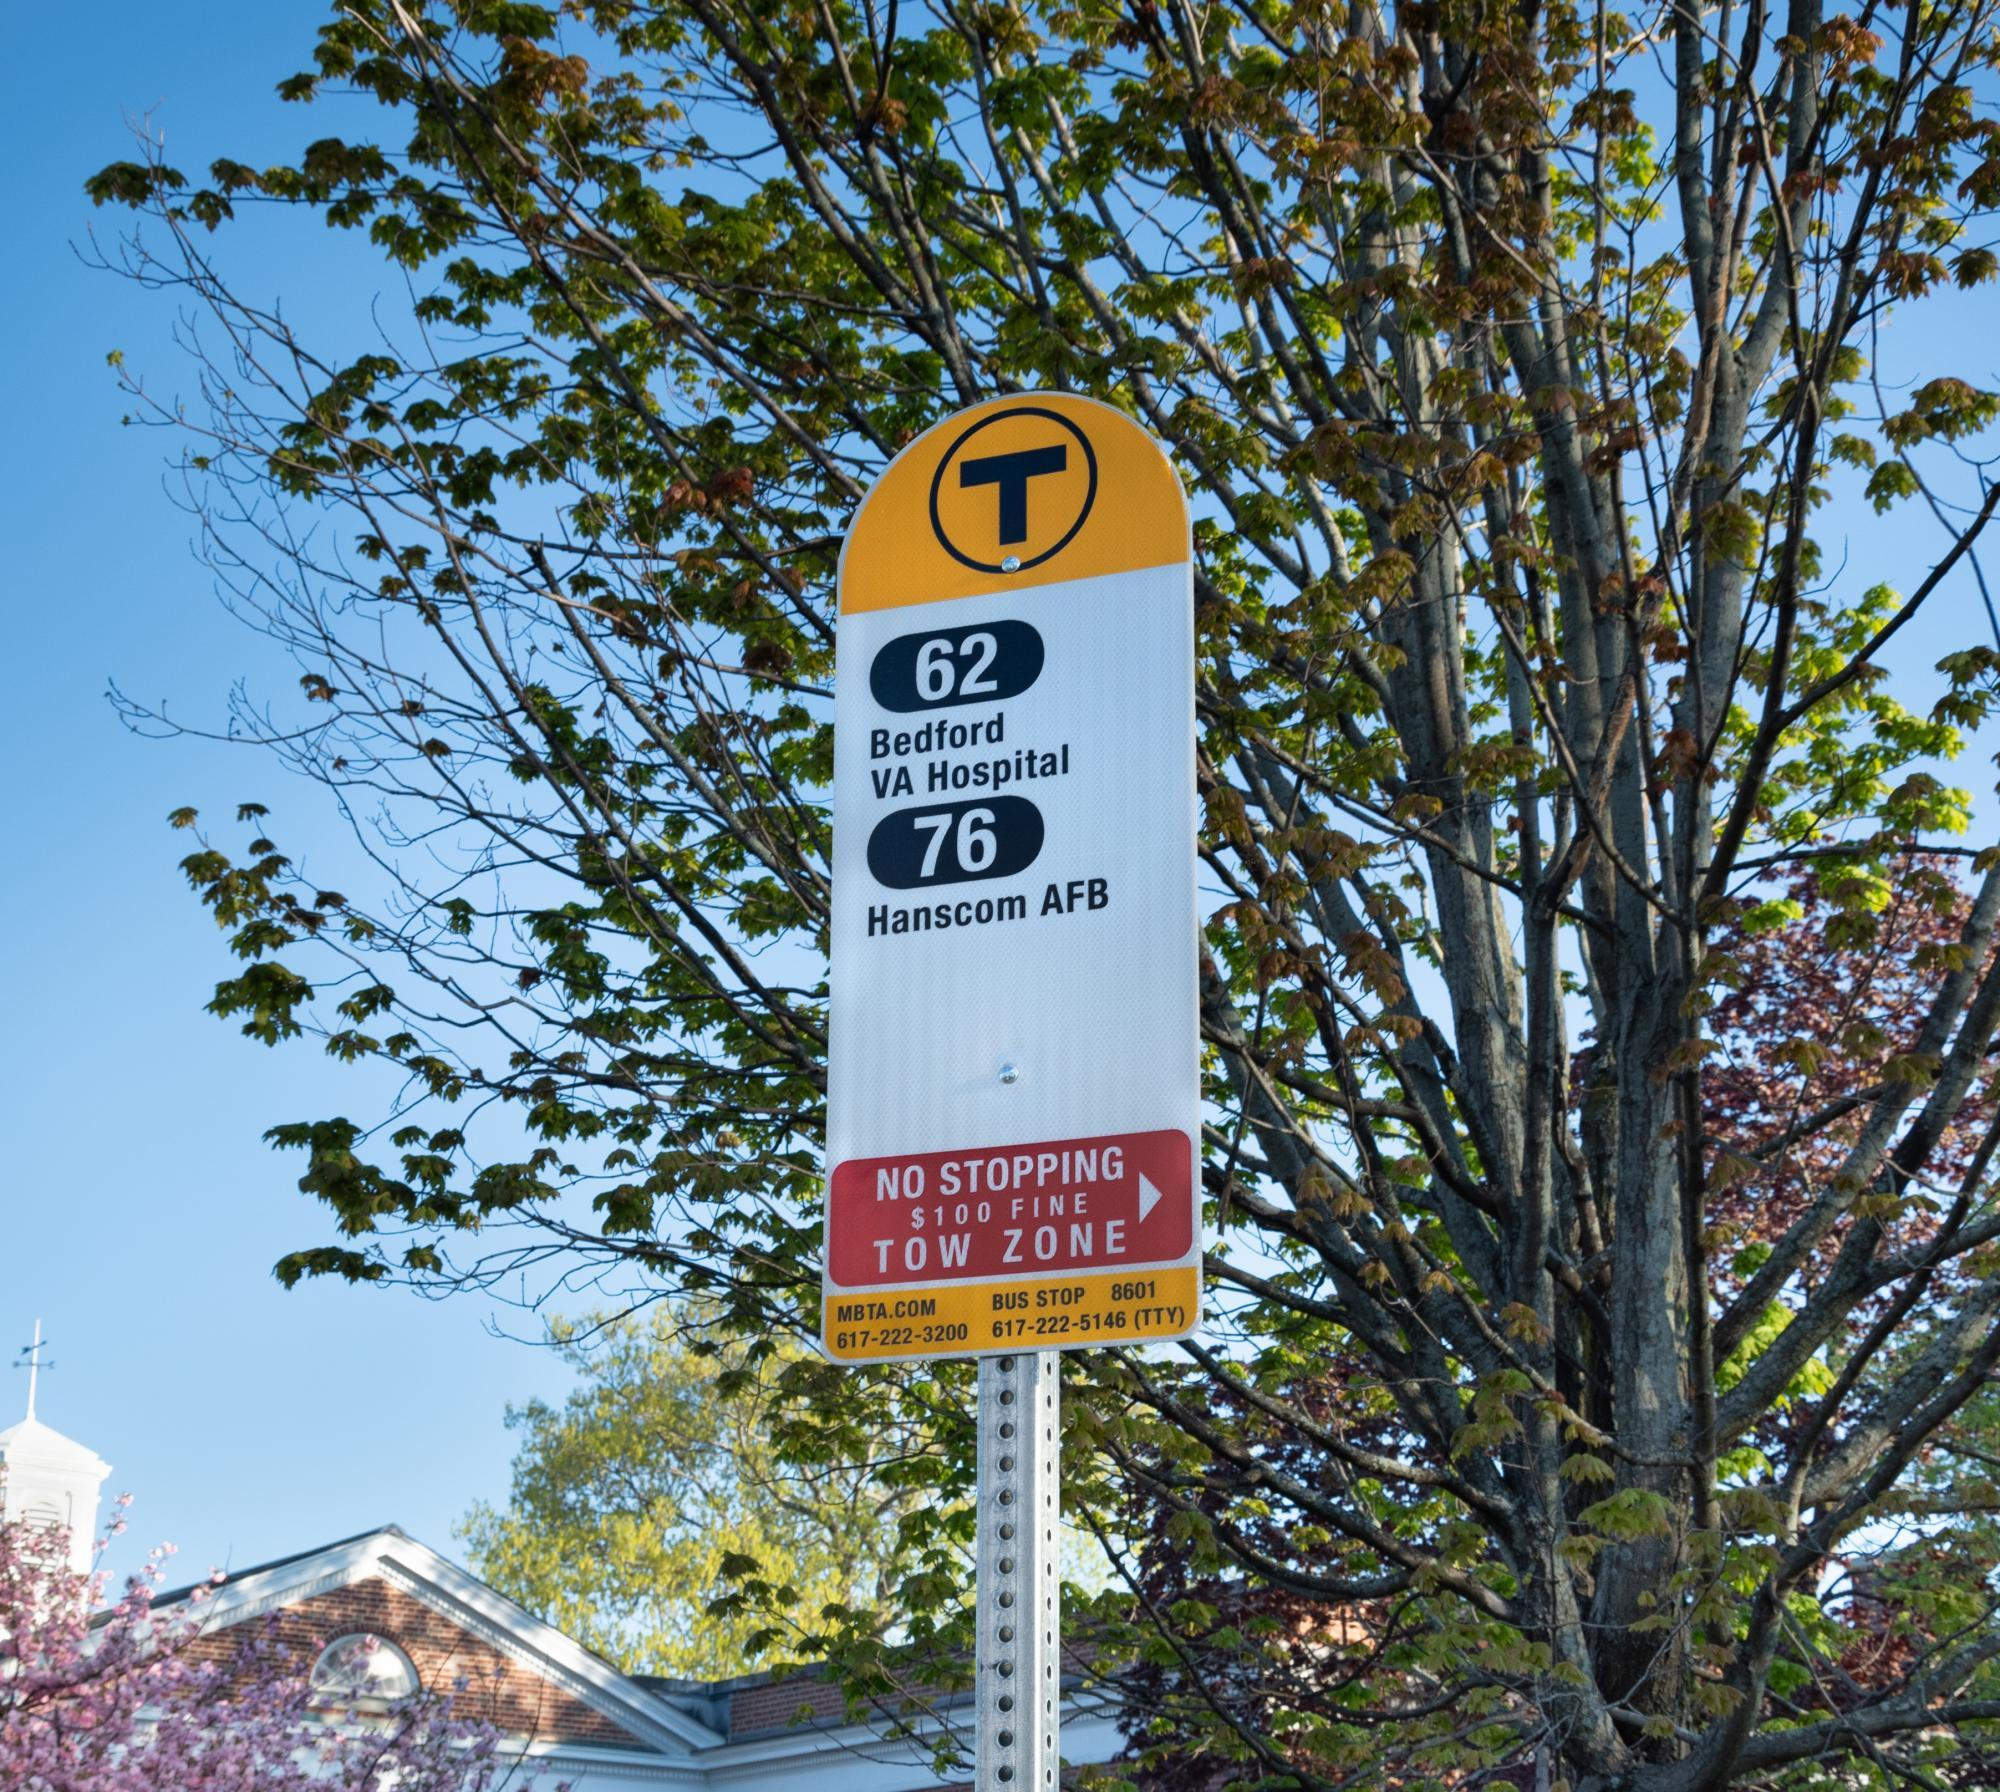 mbta bus stop sign routes 62 and 76